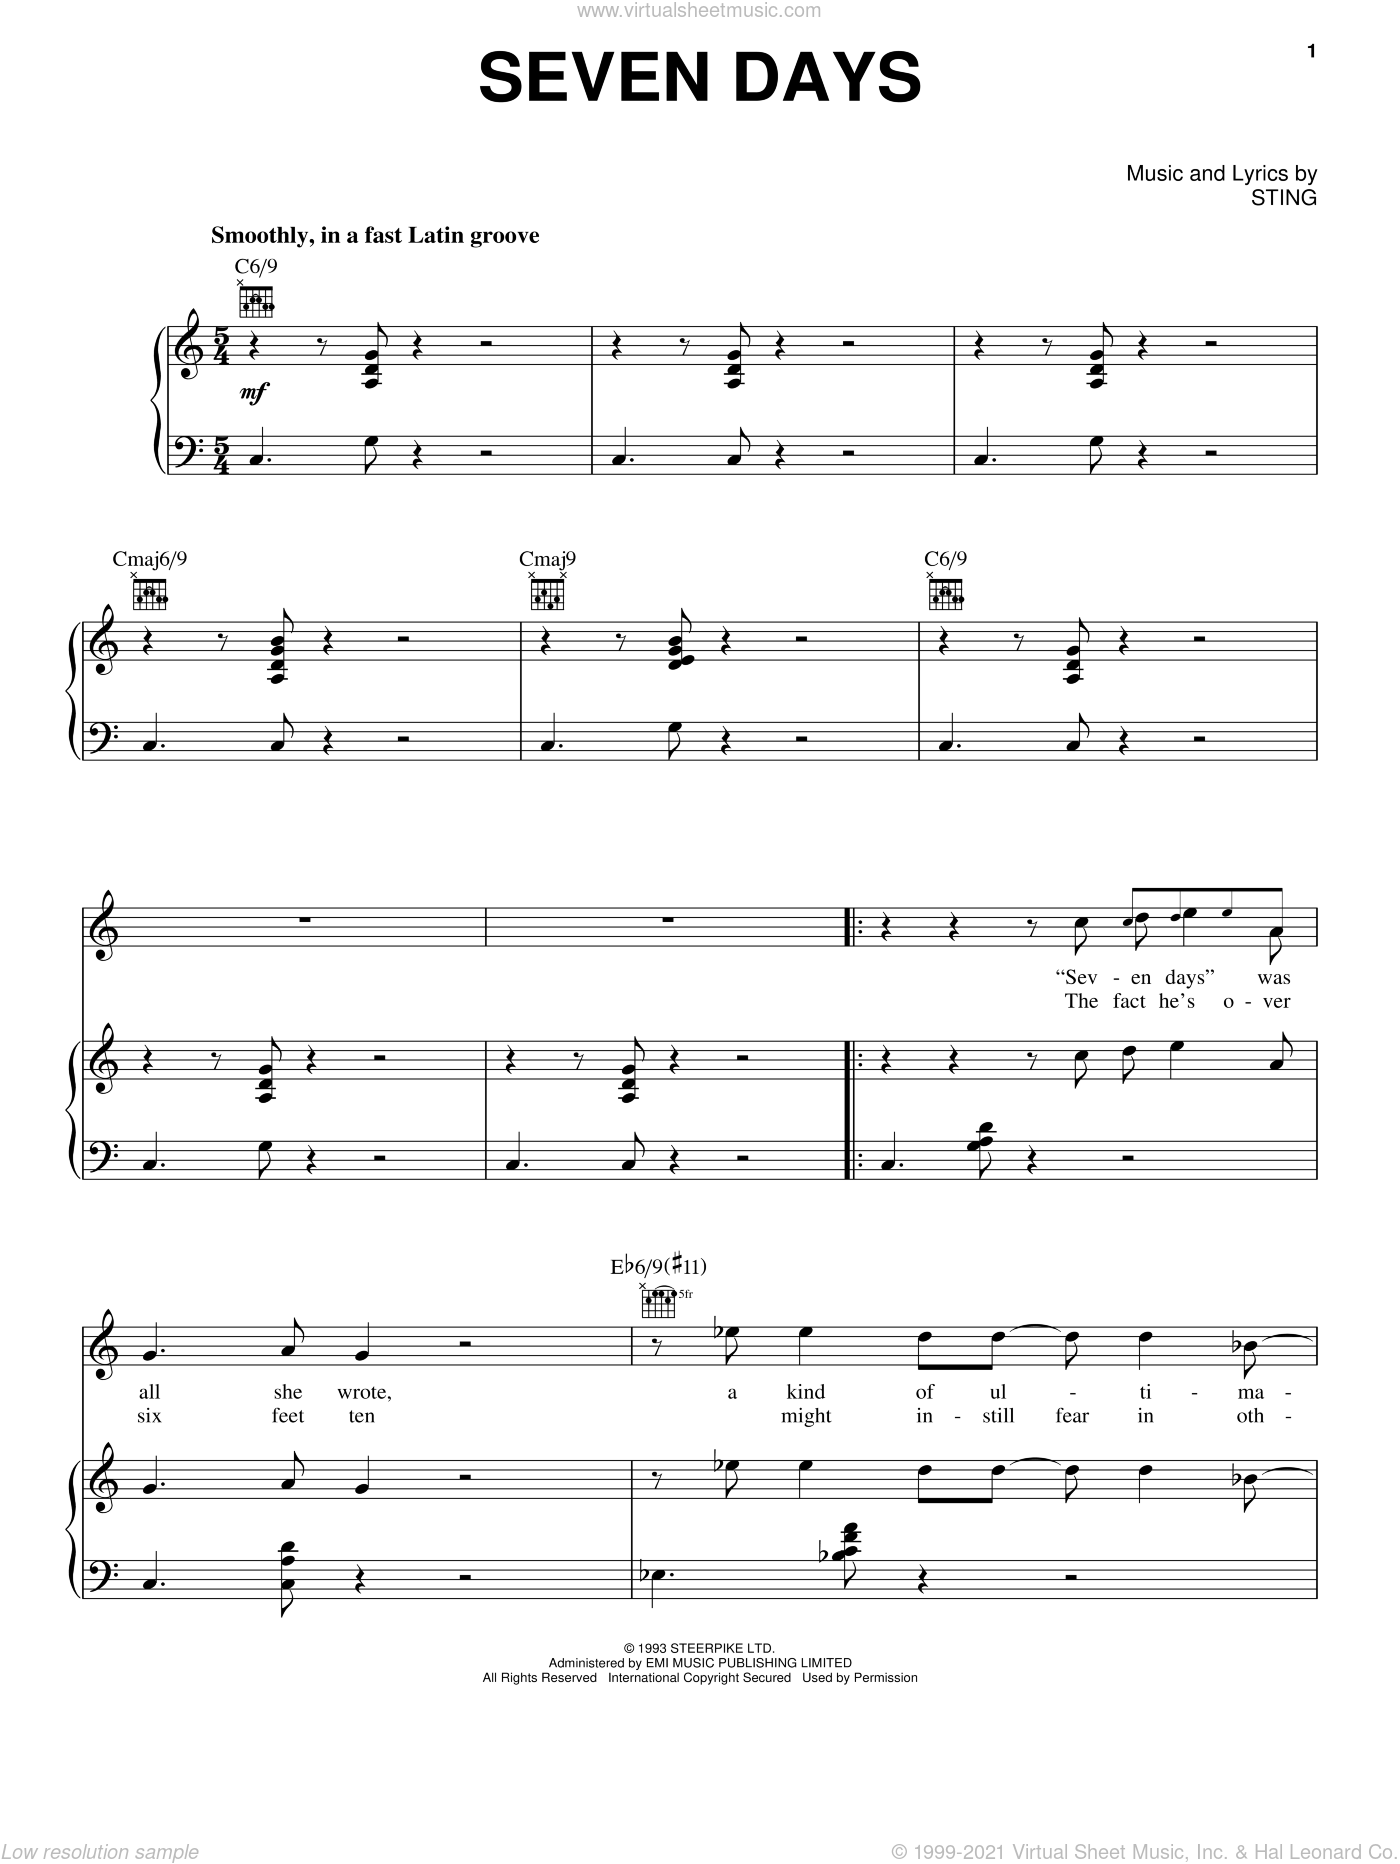 Seven Days sheet music for voice, piano or guitar by Sting, intermediate skill level